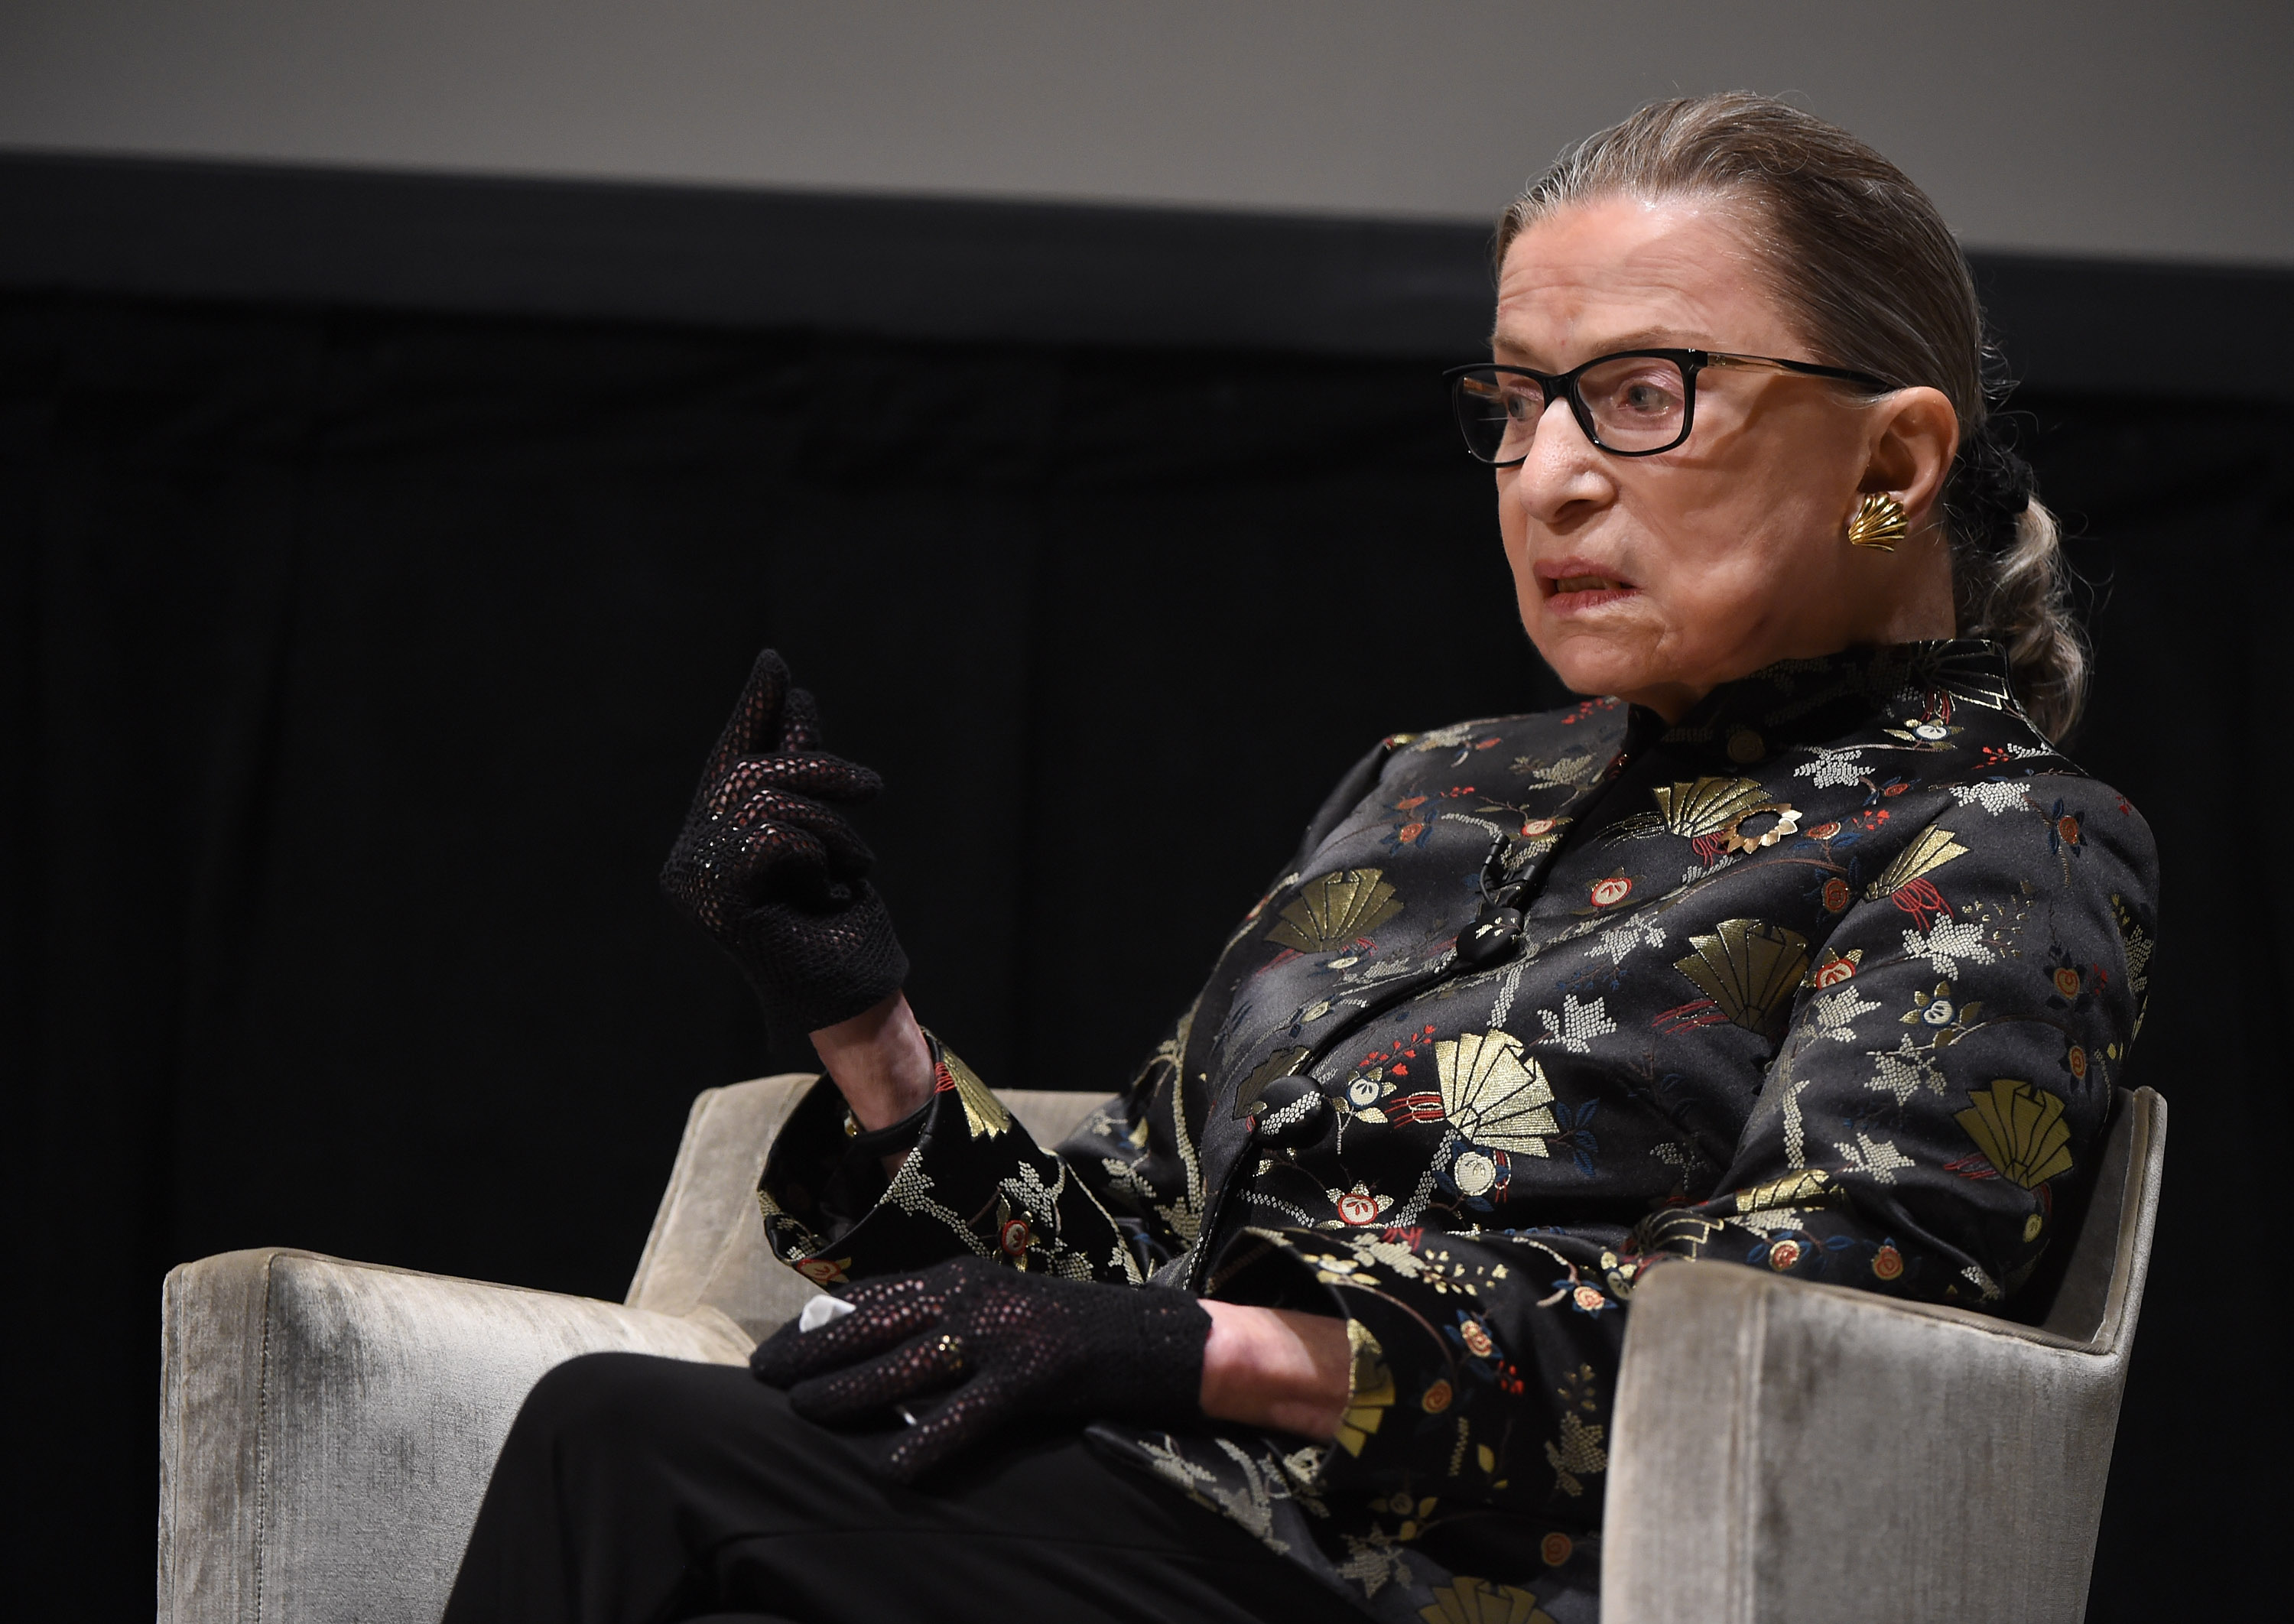 Supreme Court Justice Ruth Bader Ginsburg presents at an event at the Temple Emanu-El Skirball Center on Sept. 21, 2016 in New York City.